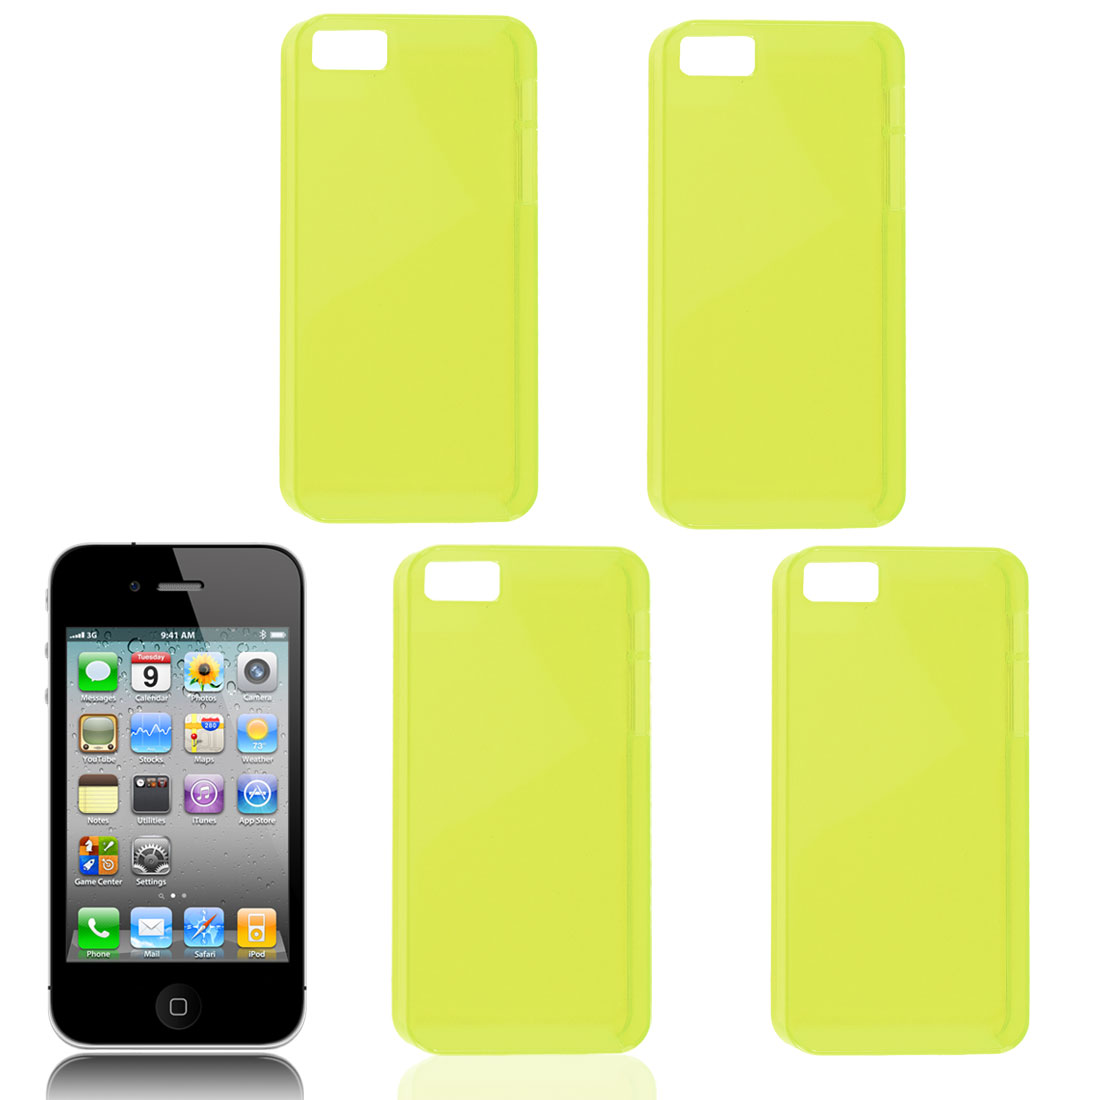 4 Pcs Yellow Plastic Protector Shell Back Case Cover for iPhone 5 5S 5G 5GS